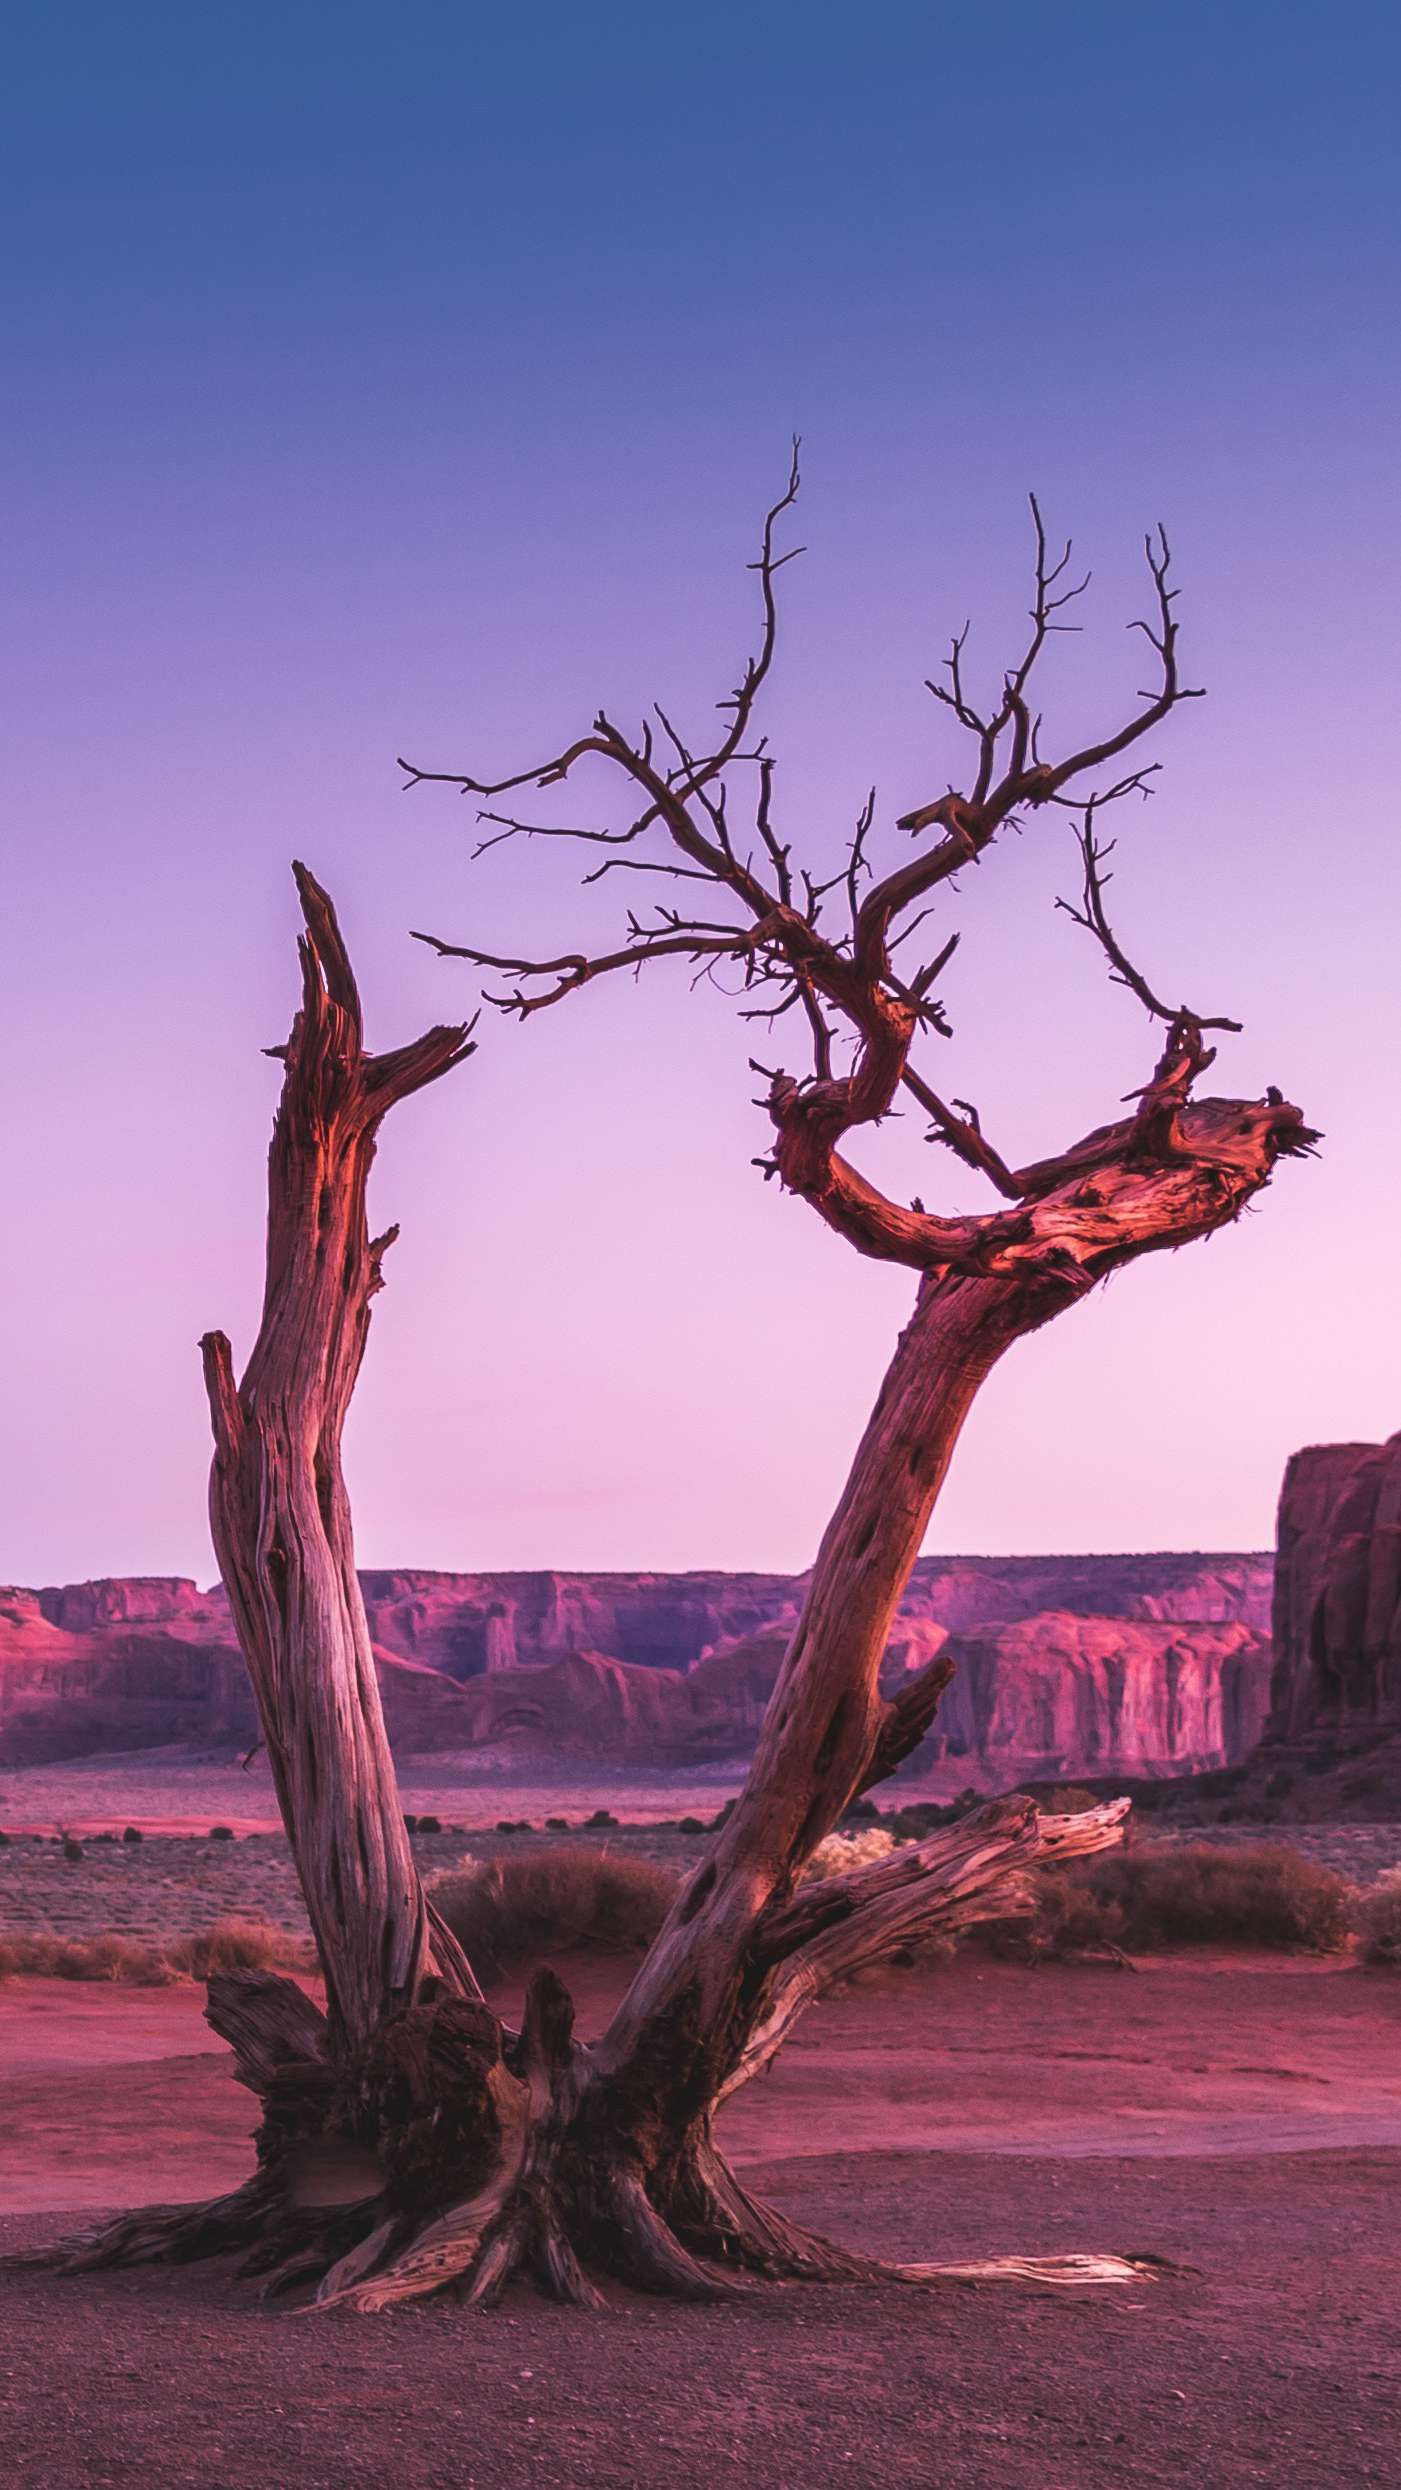 Old Tree In Desert Valley Iphone Wallpaper In 2020 Best Iphone Wallpapers Cool Wallpapers For Phones Aesthetic Iphone Wallpaper